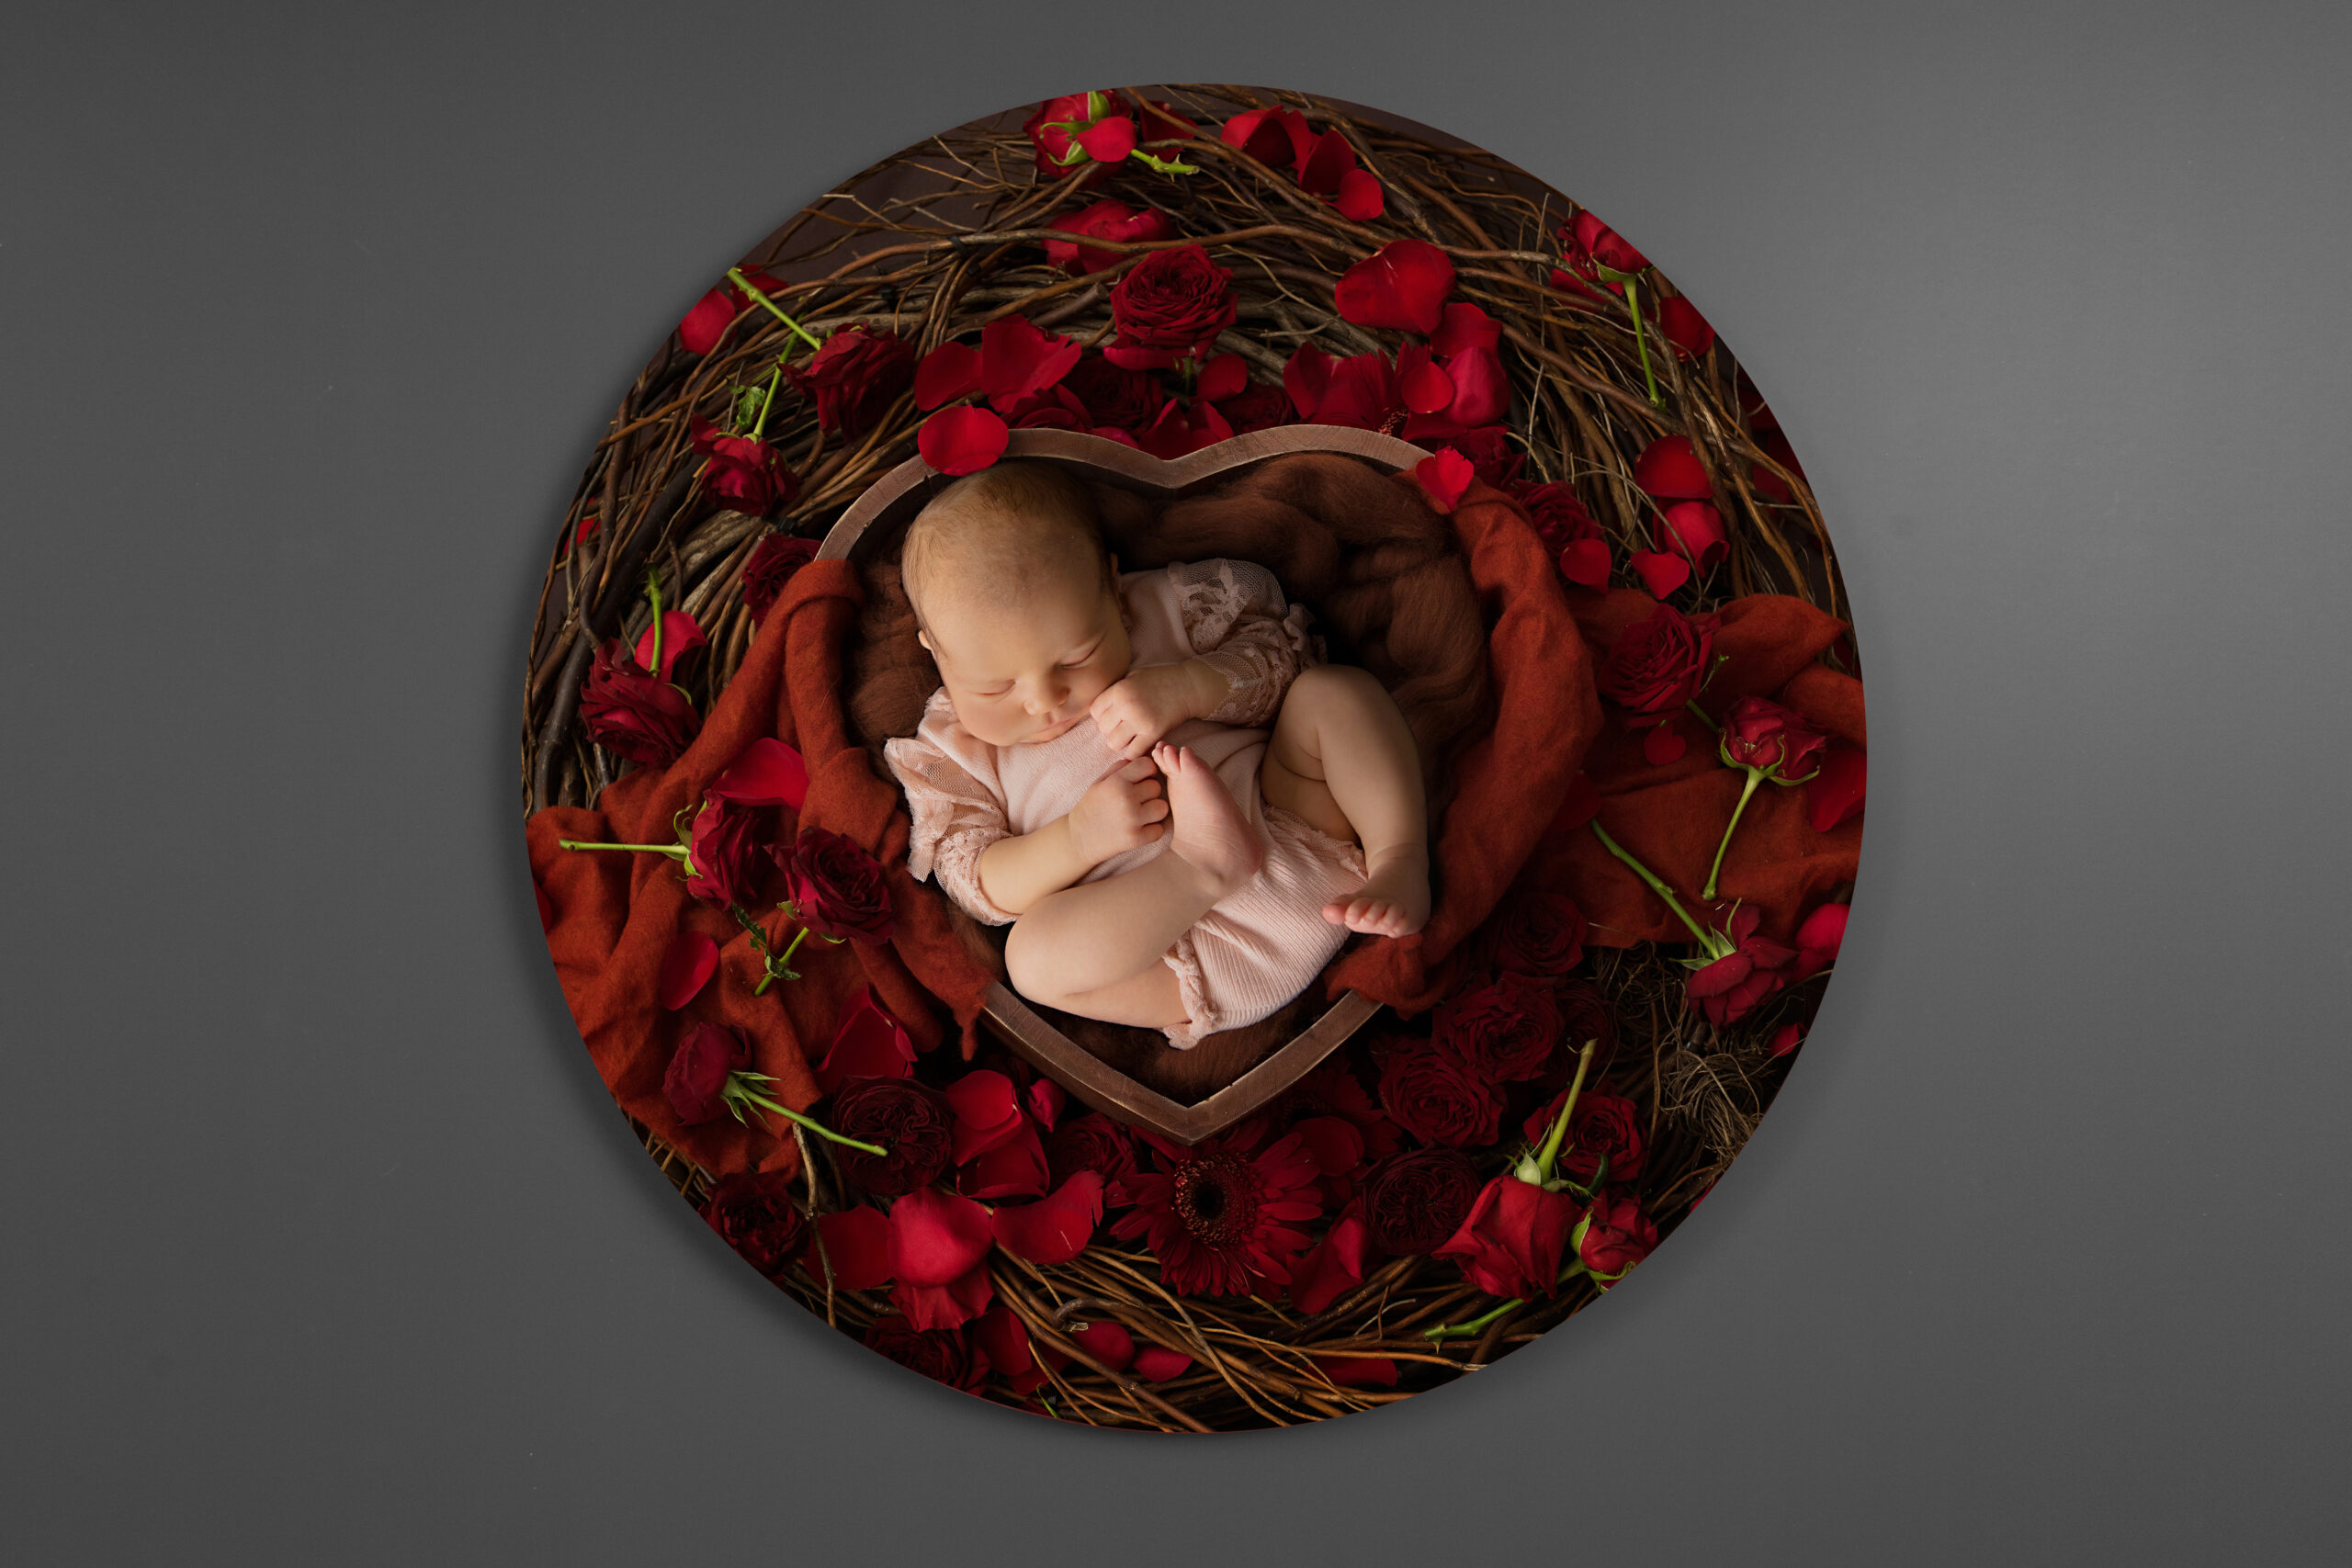 Digital composite photo of a newborn with flowers at rachael phillips photography in mansfield, nottingham